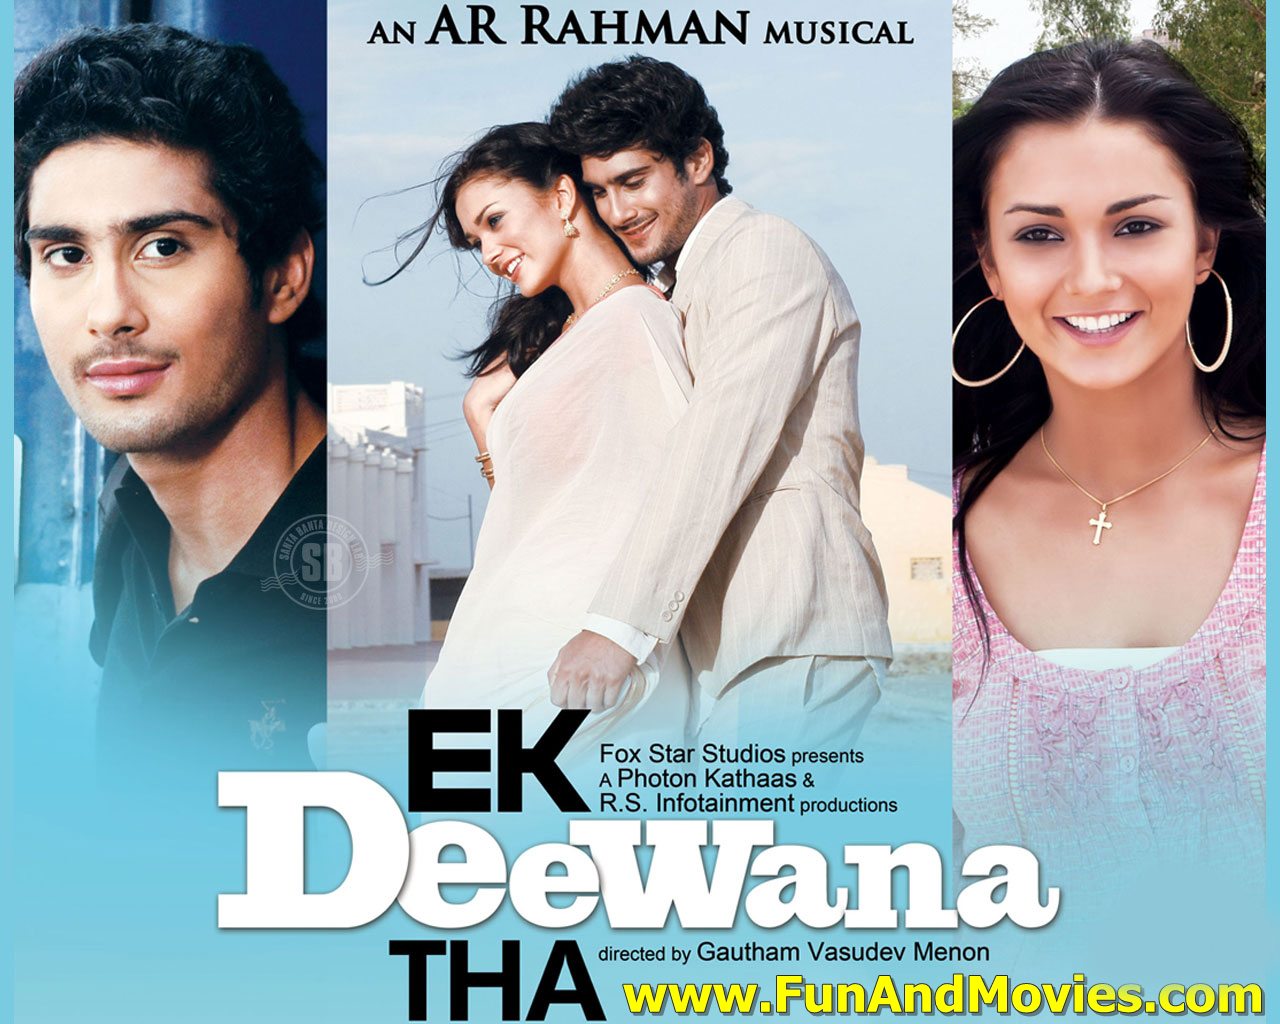 Ek Deewana Tha (2012) Hindi